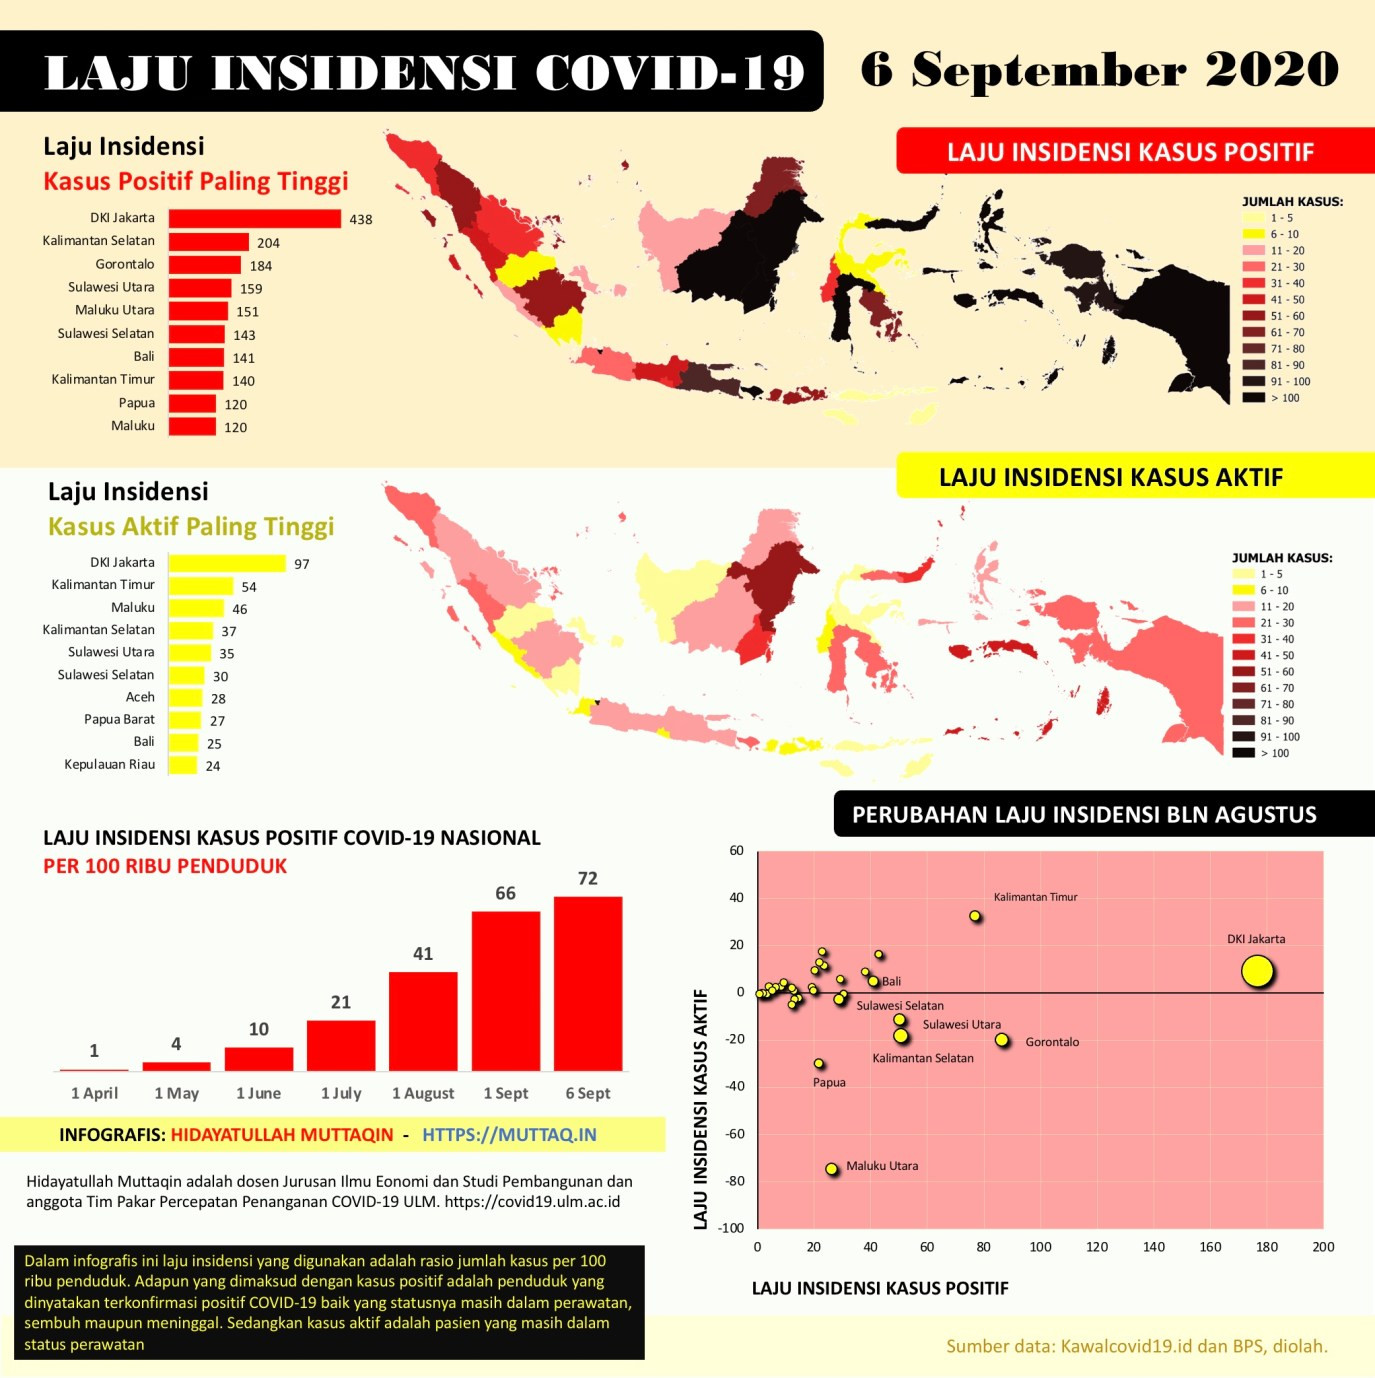 Laju Insidensi Covid-19 Indonesia per 6 September 2020